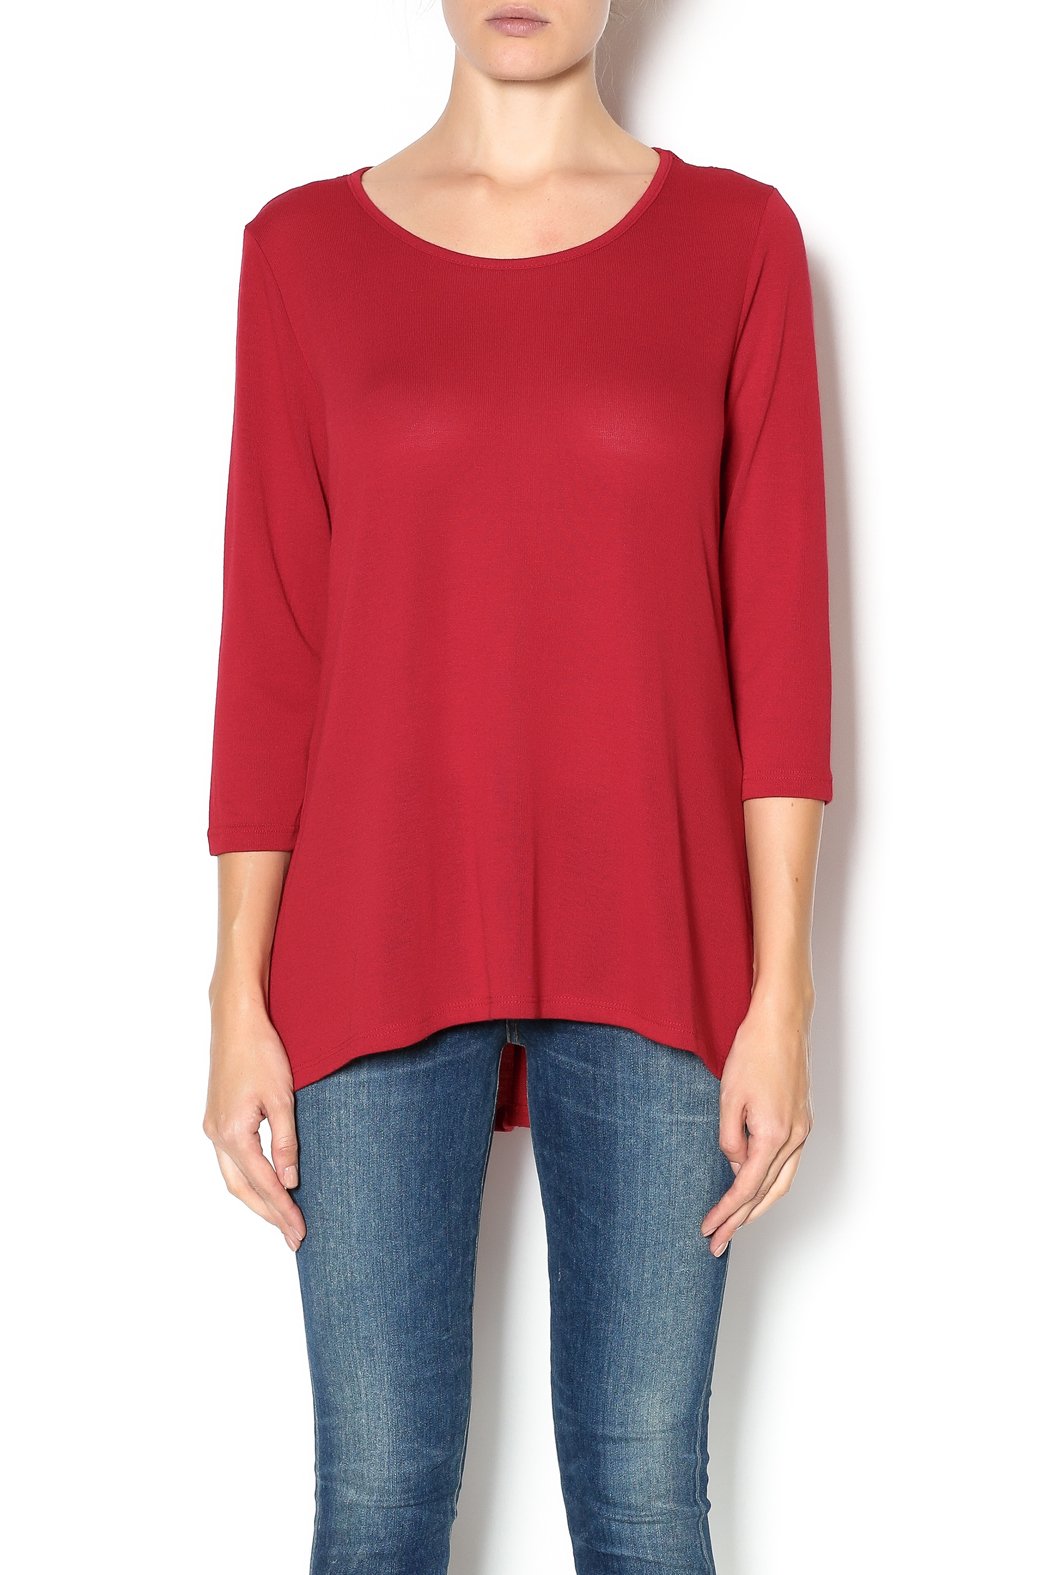 Keren Hart Red Sweater Tunic from California by The Clothes Mine ...